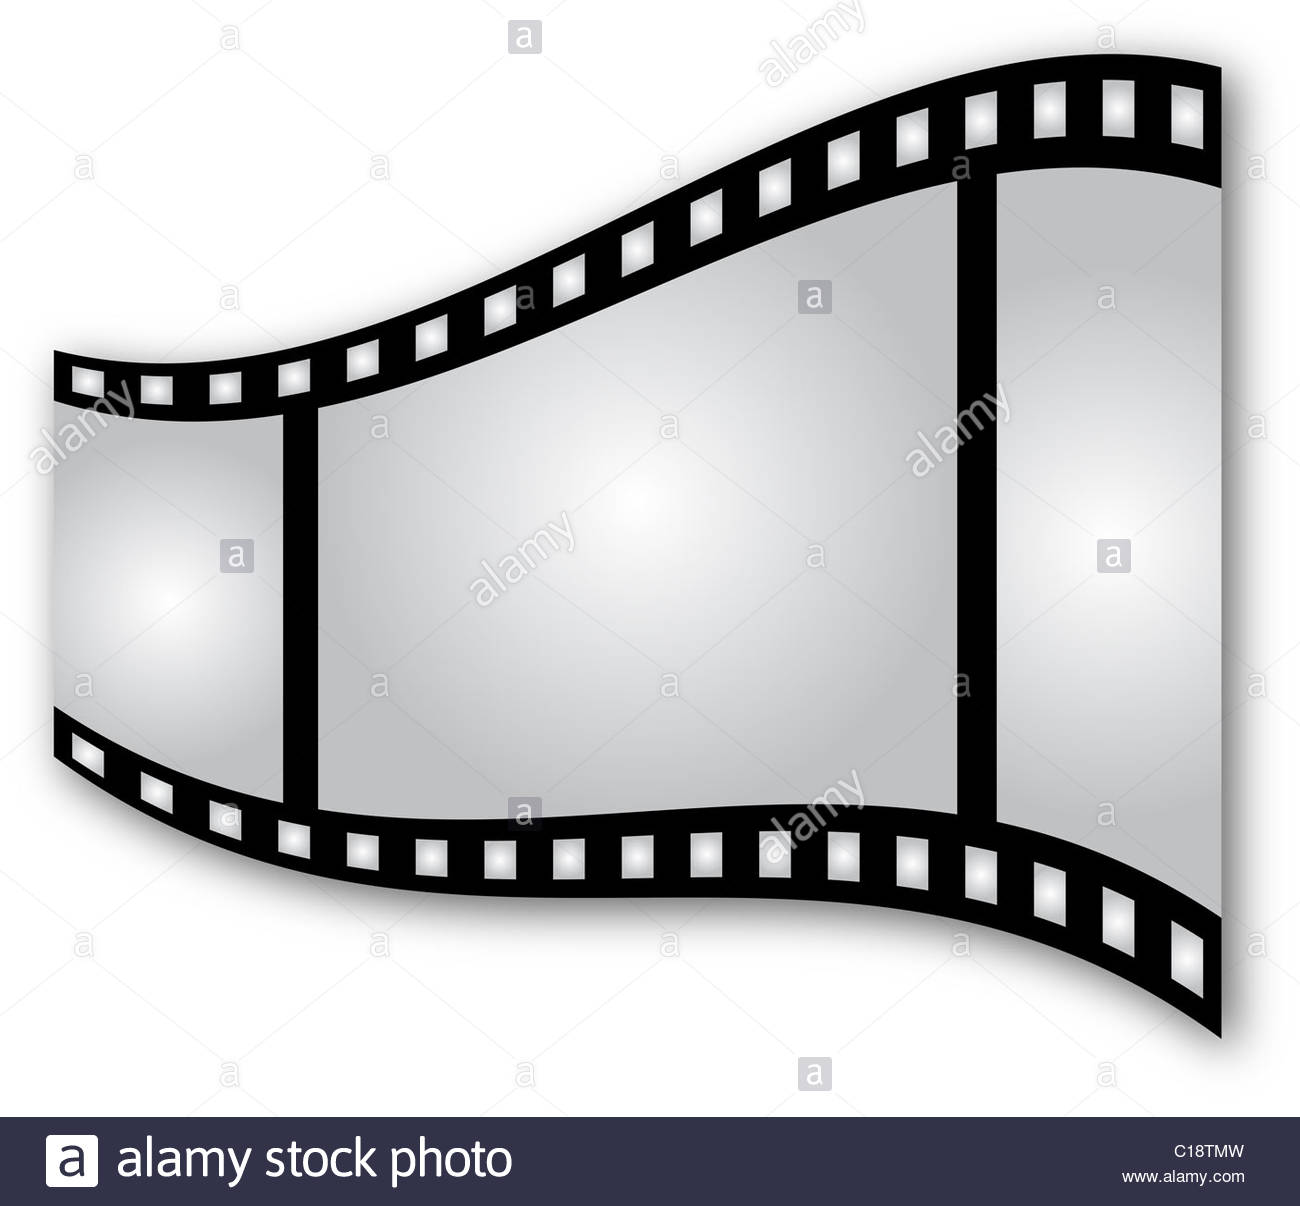 1300x1206 Curved Film Strip On White Background Stock Photo, Royalty Free